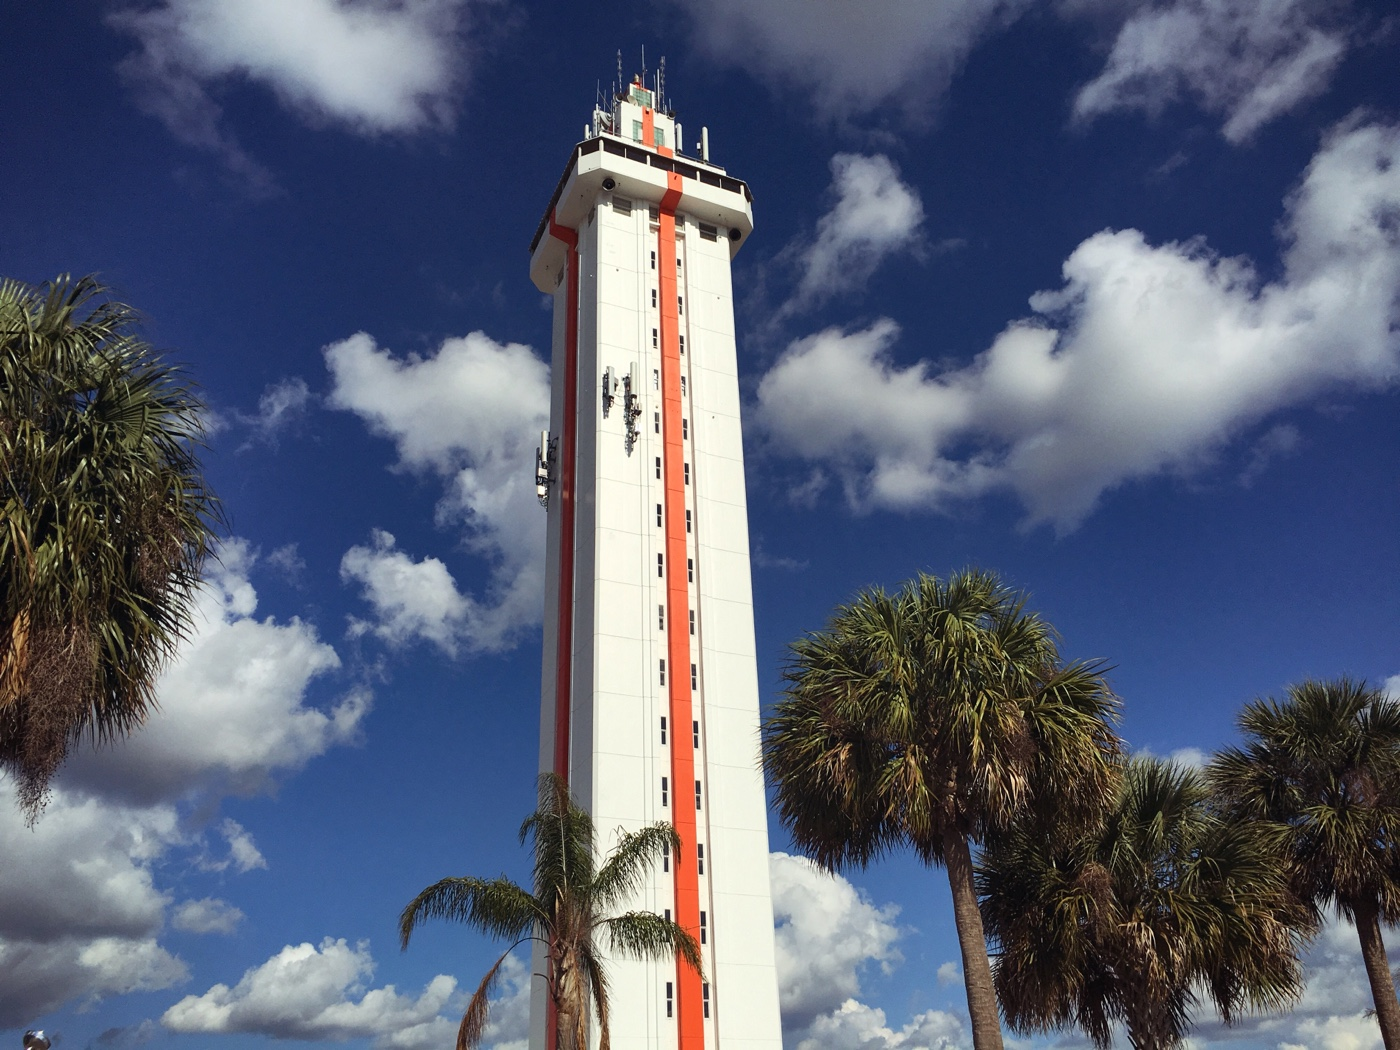 a visit to the florida citrus tower is a great stop during an original orlando tours of old florida roadside attraction day visit to historic clermont florida for a winery picnic and tasting